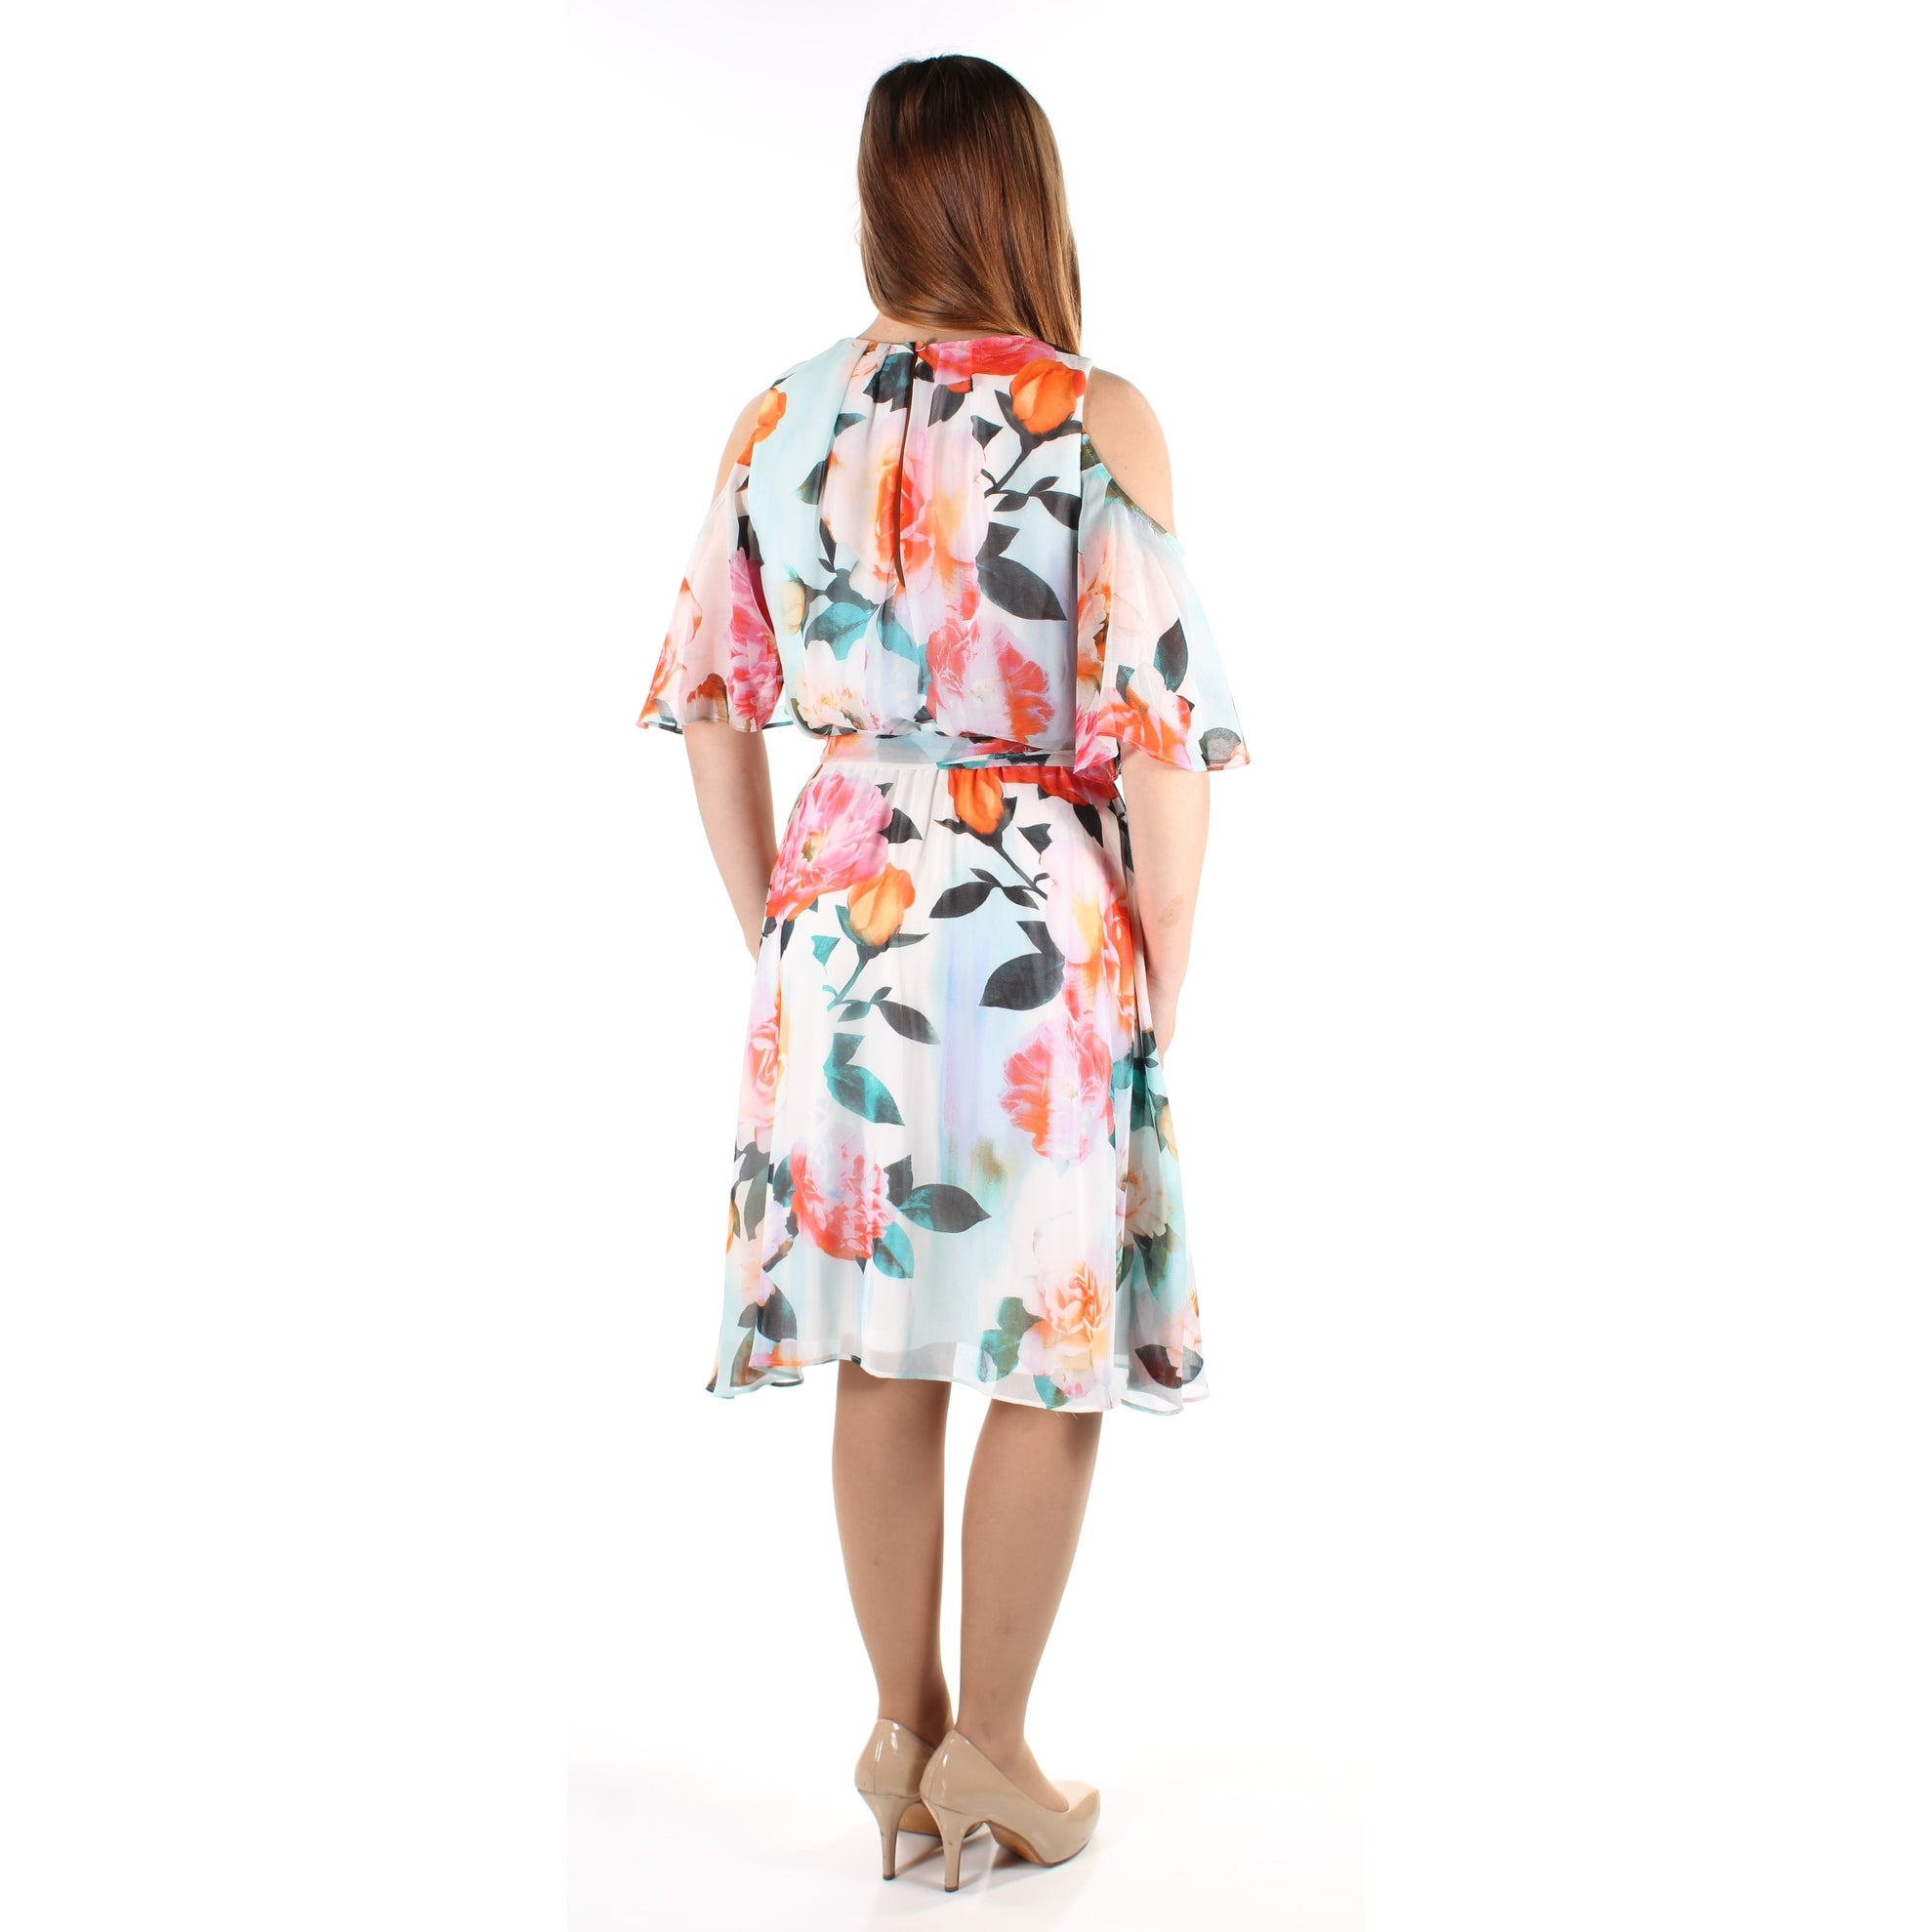 93341936 Shop CALVIN KLEIN Womens White Cold Shoulder Floral Short Sleeve Jewel Neck  Below The Knee Sheath Wedding Dress Size: 8 - Free Shipping On Orders Over  $45 ...